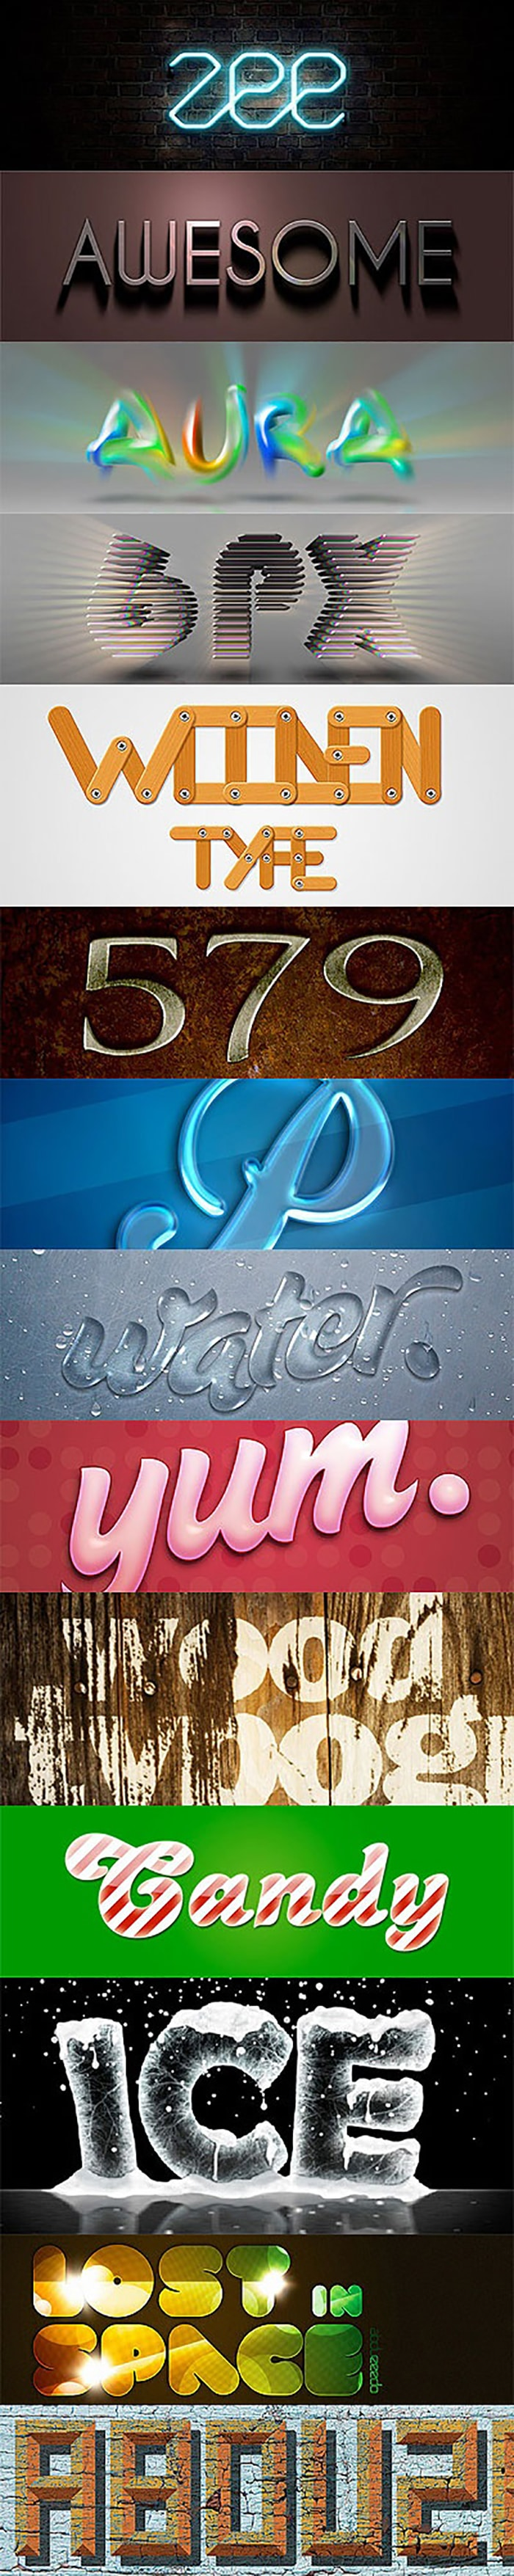 amazing photoshop text effects